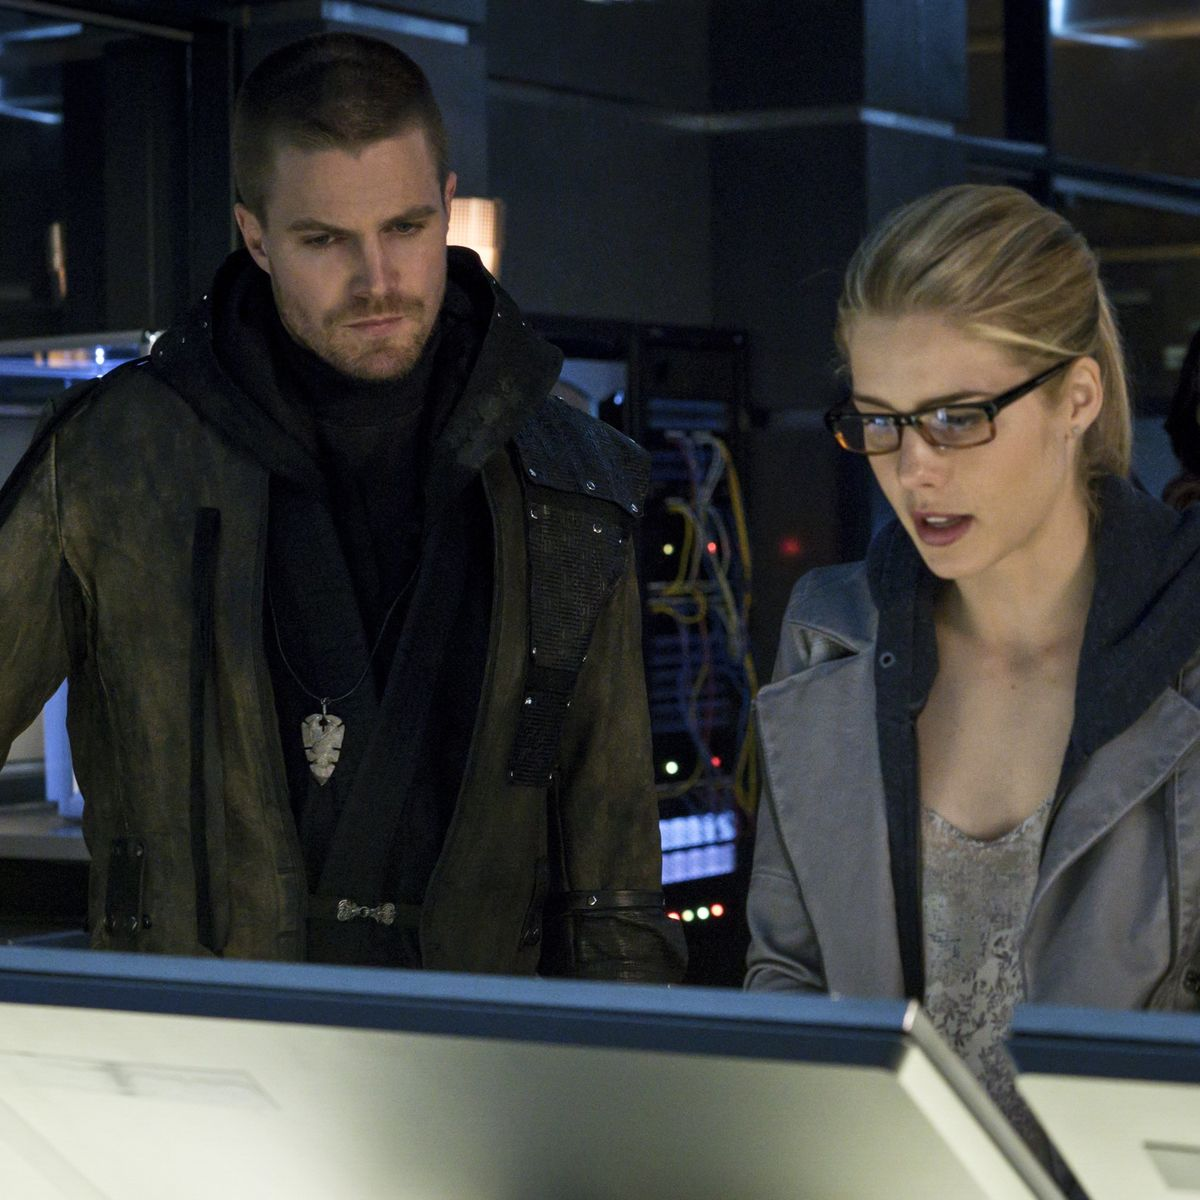 Arrow-S3-Ep.-23-My-Name-is-Oliver-Queen-AR323B_0005b_2ddb0375.jpeg